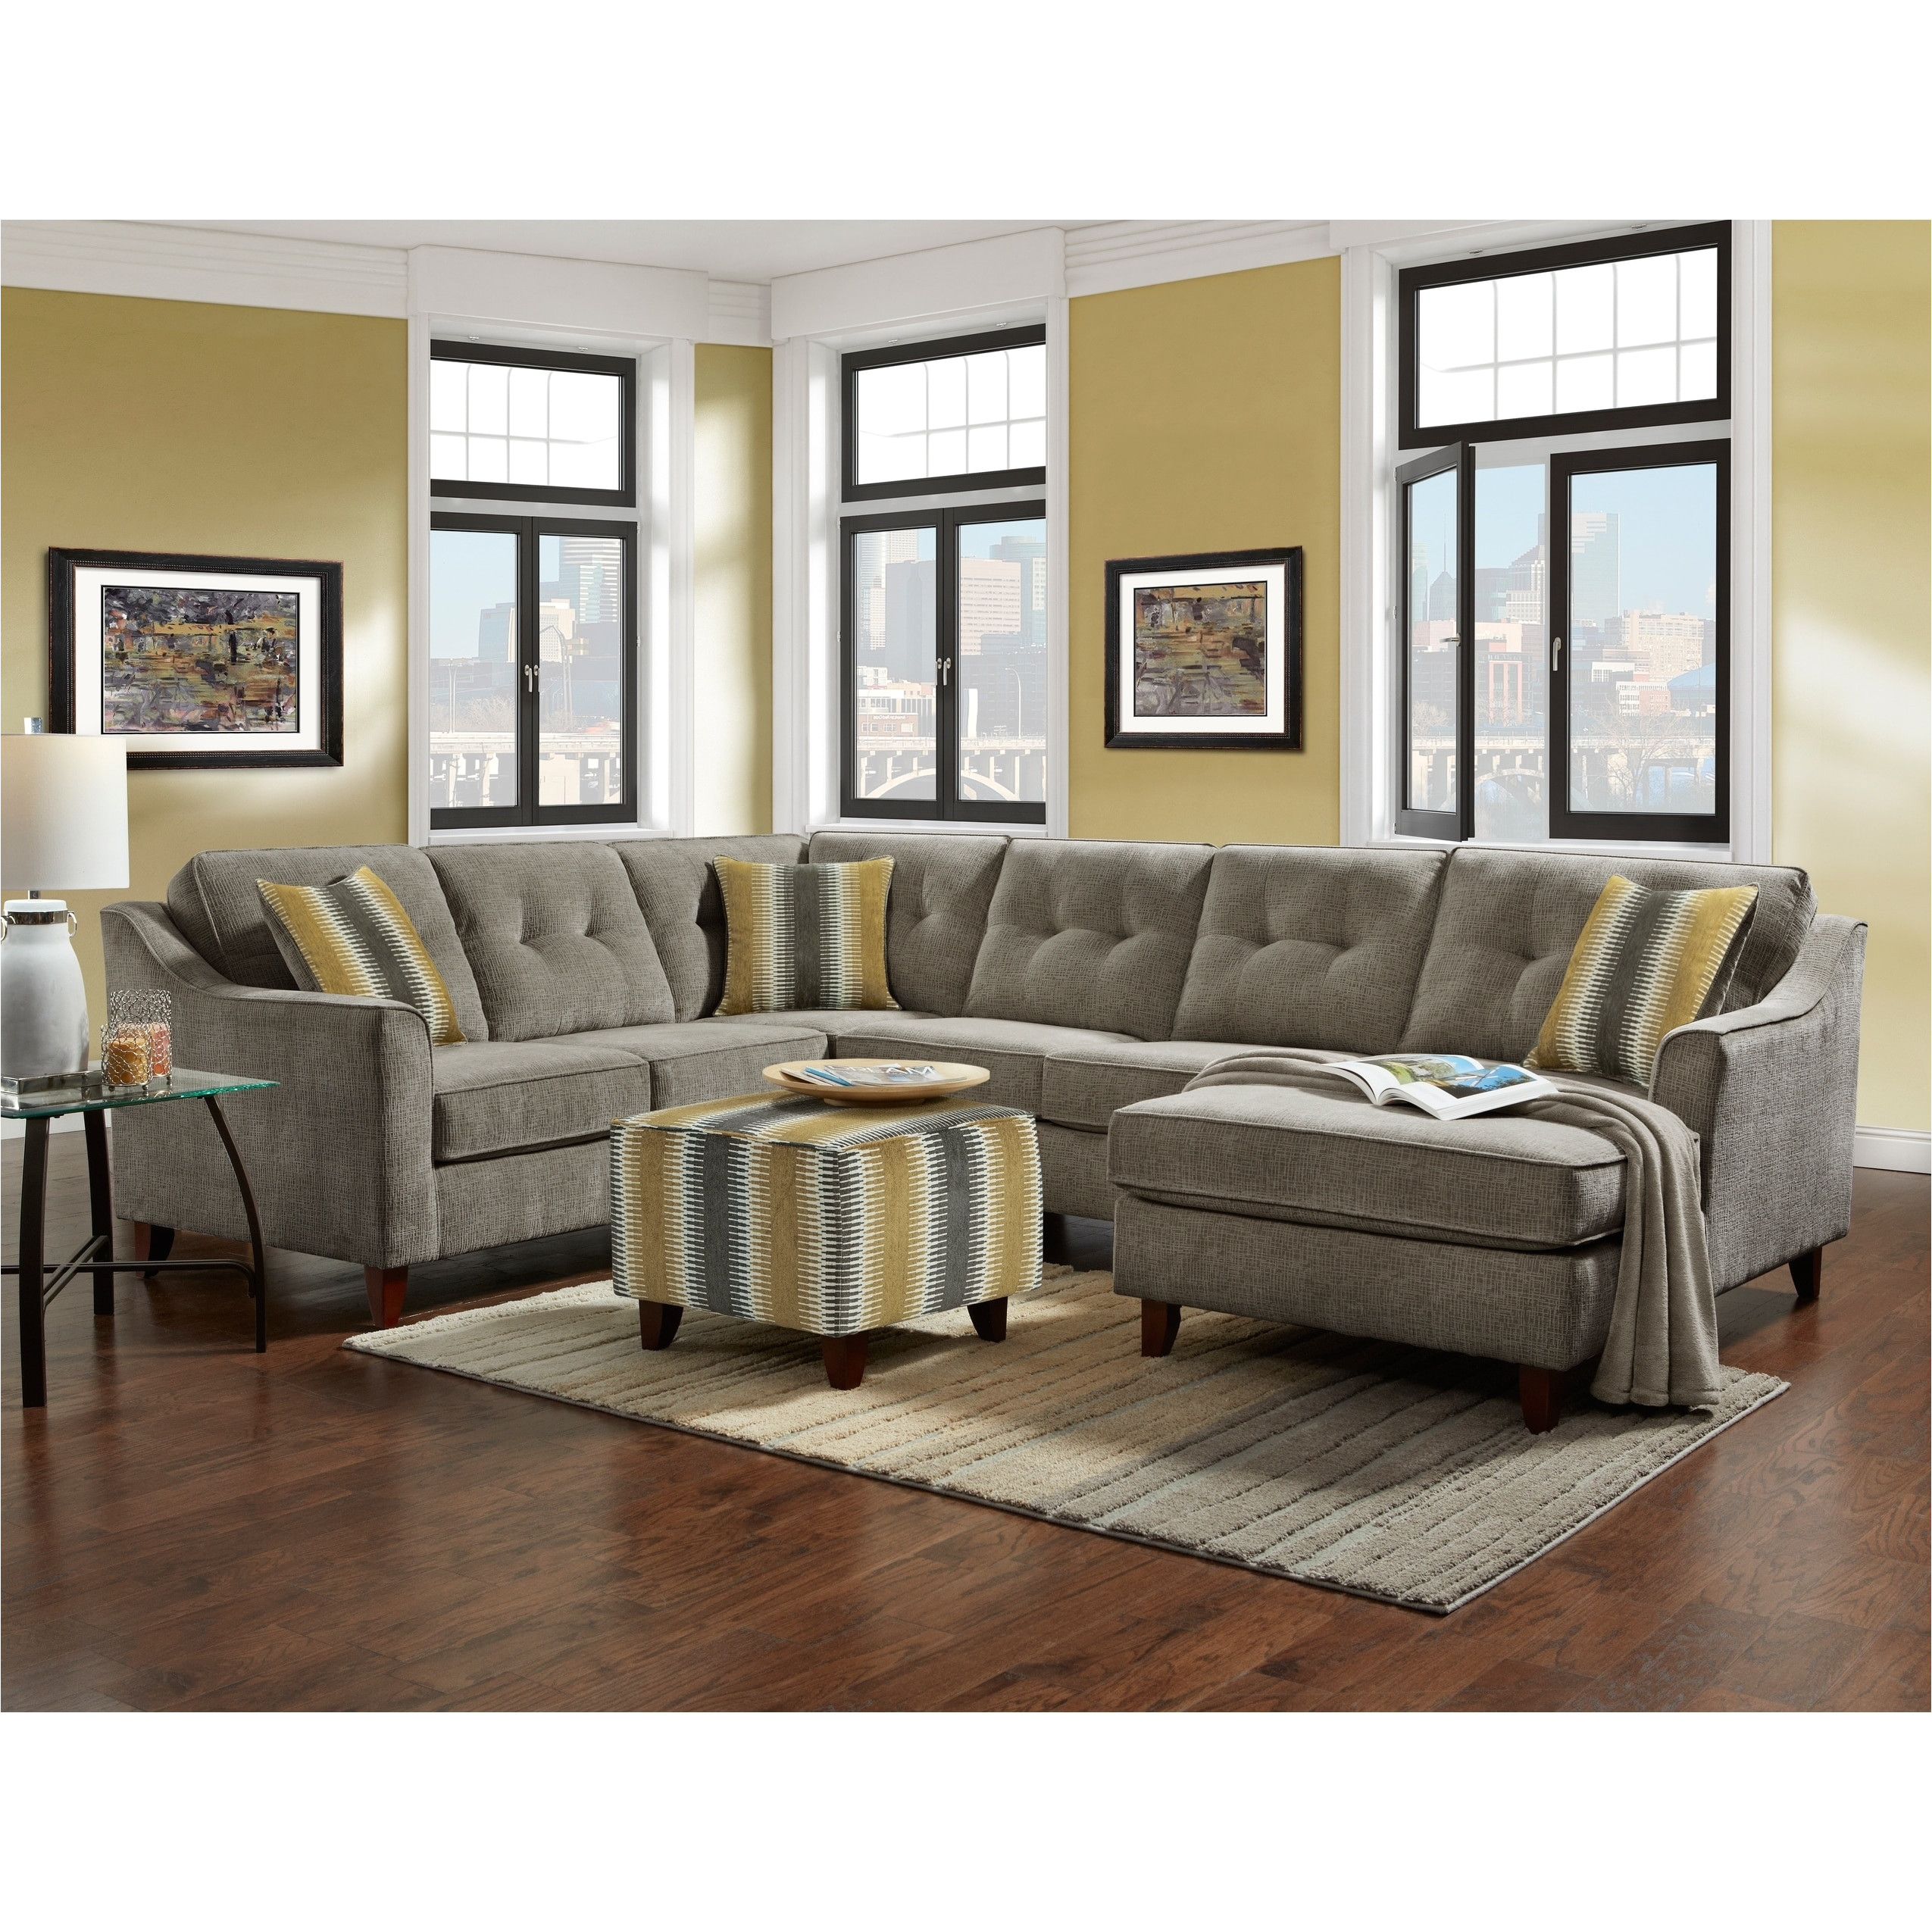 gray tufted sectional shop sofatrendz bally free shipping today jpg